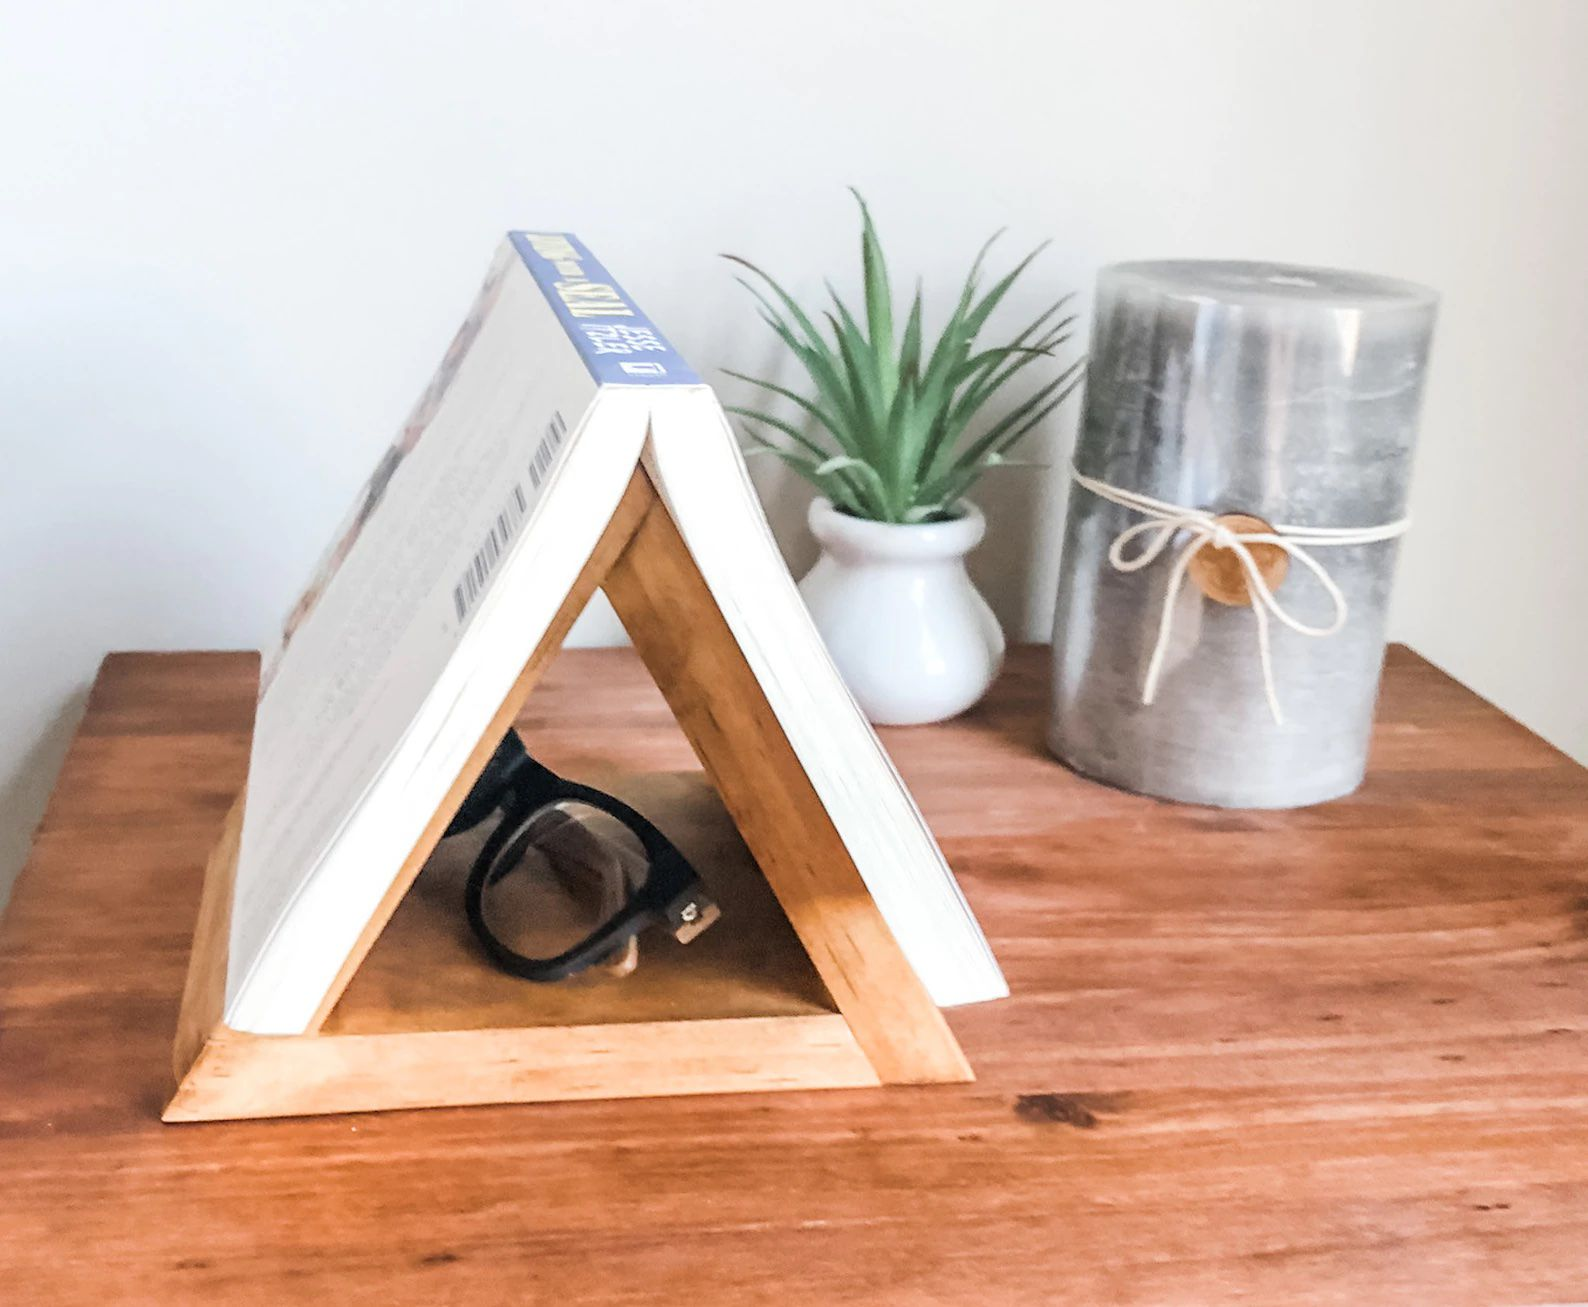 A triangular book holder sits on a nightstand, and a book is set down, open, on top of the holder so the pint of the triangle holds the book open. It's displayed on a nightstand with a candle and plant.